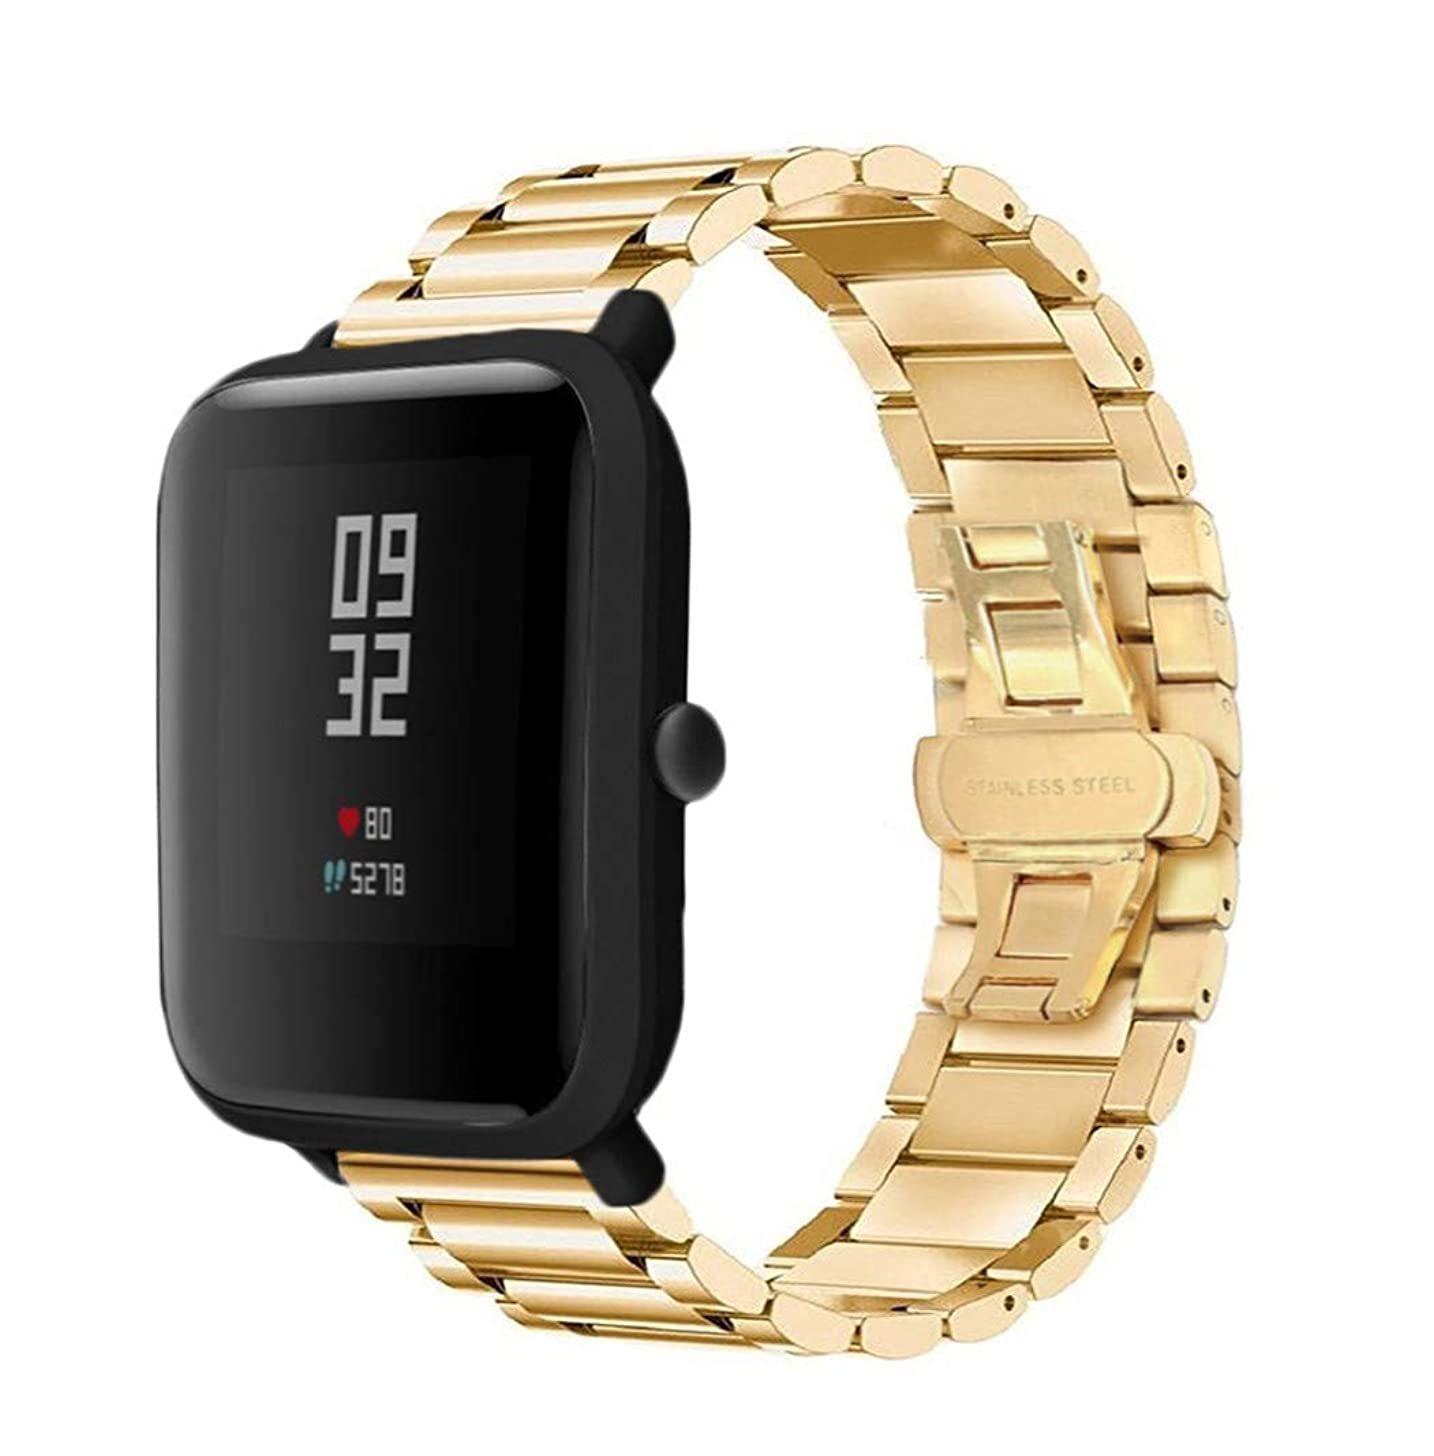 Cywulin Stainless Steel Band for Xiaomi Huami Amazfit Bip Youth Smart Watch, 20mm Solid Metal Replacement Bracelet Wristband Strap Loop Accessories for Galaxy Watch 42mm Active Gear Sport (Gold)